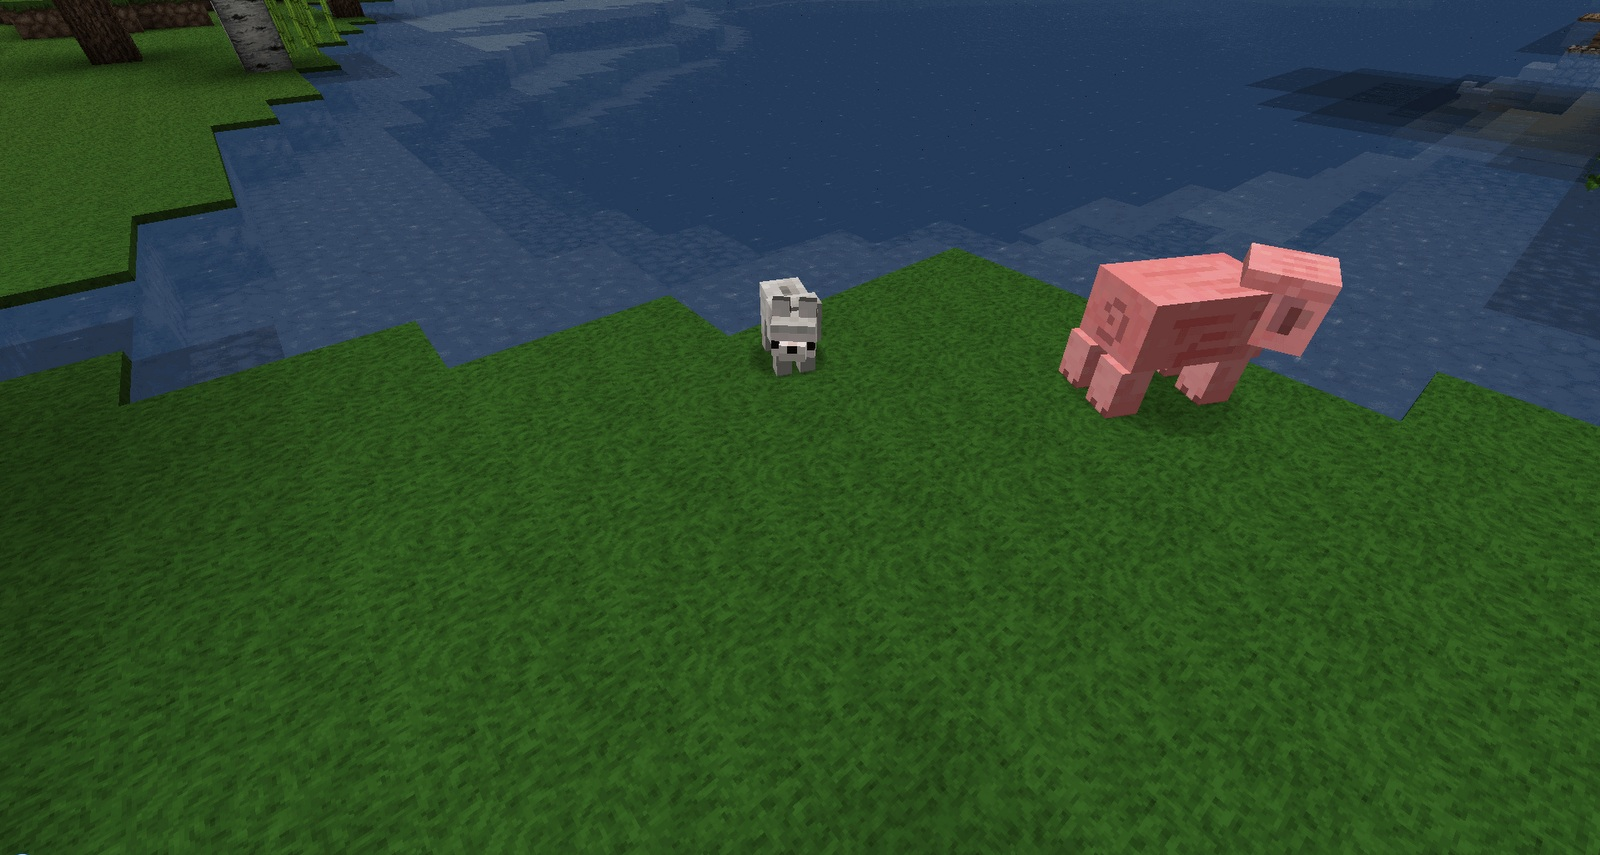 1477135458_210_Baby-Animals-Model-Swapper-Squickens-Mod-1.10.2 Baby Animals Model Swapper, Squickens Mod 1.10.2